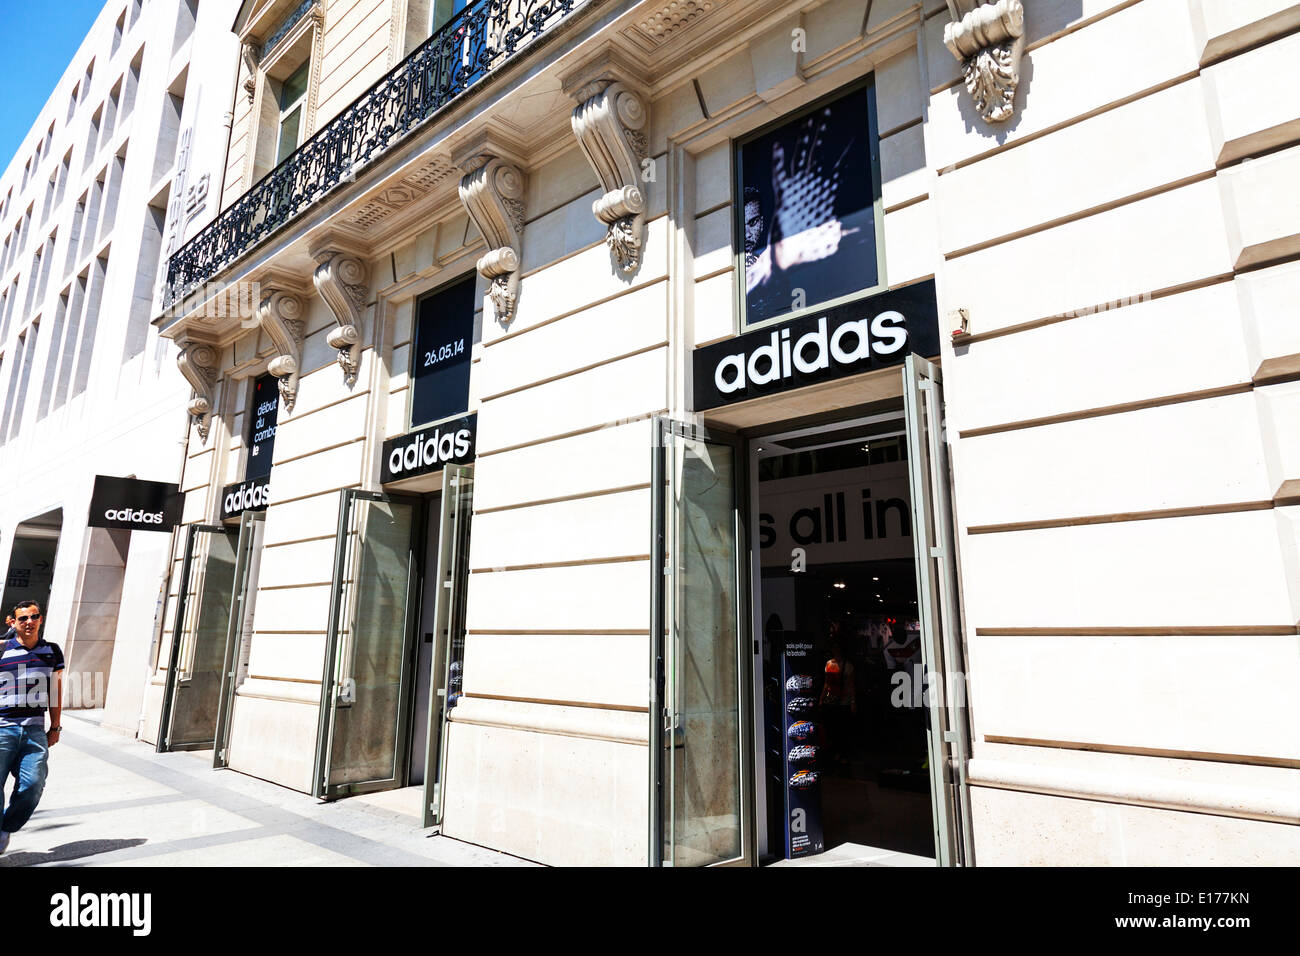 Adidas Shop Paris France